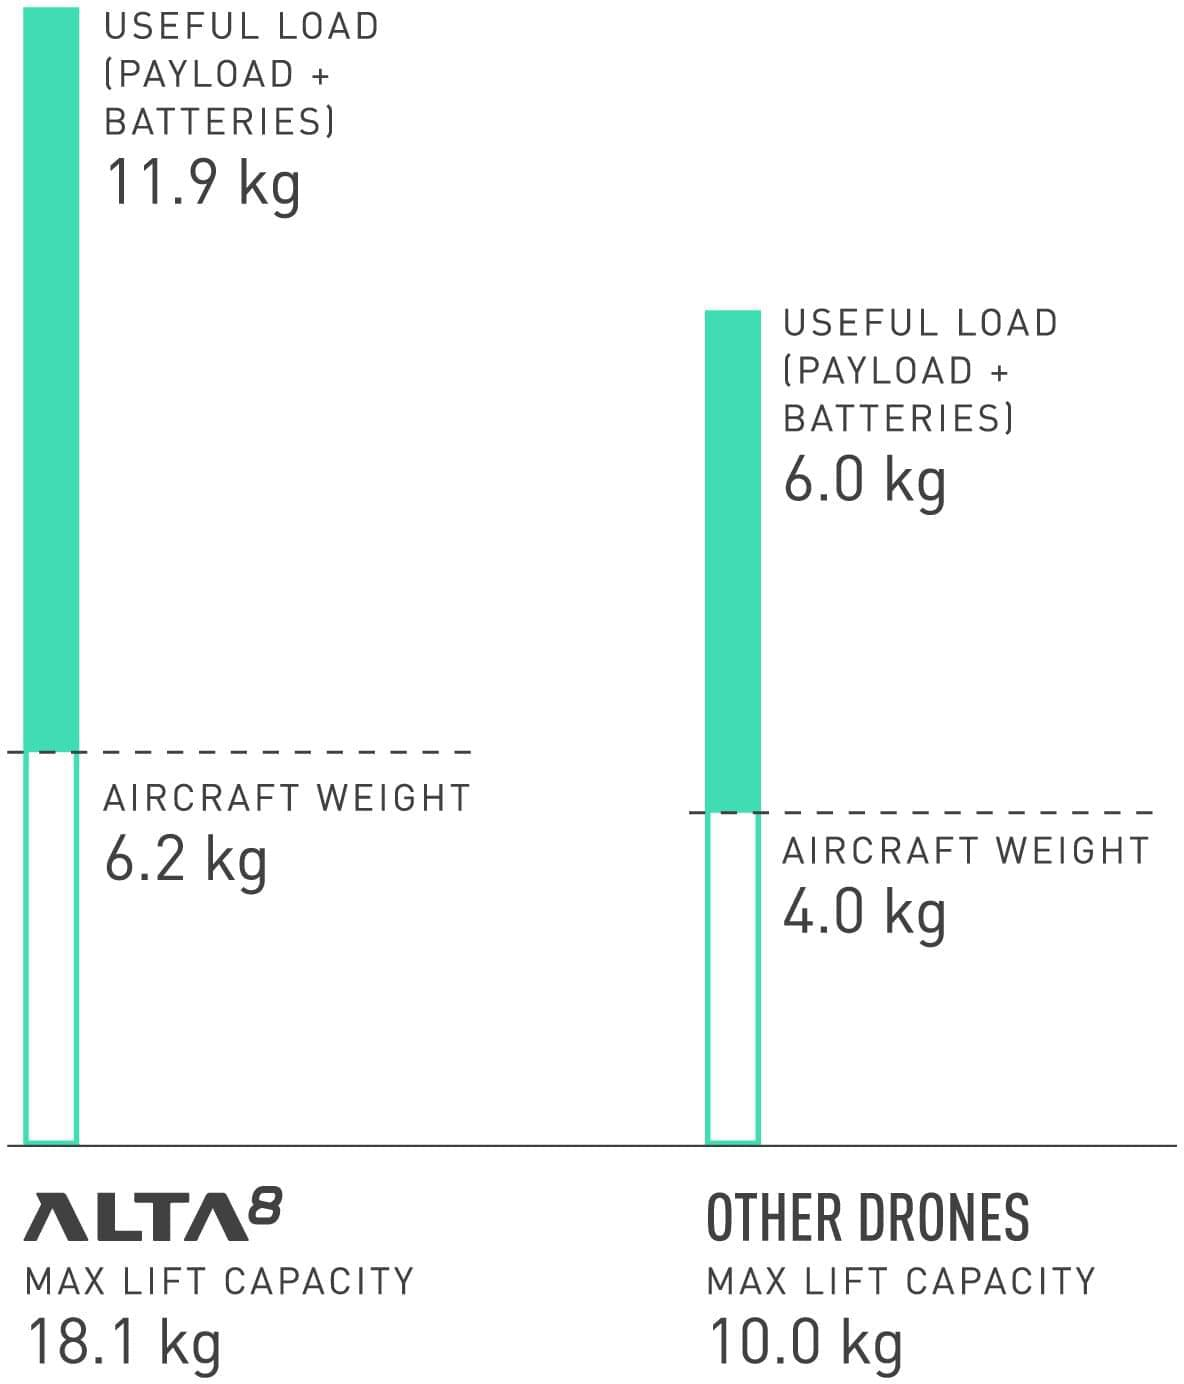 Comparison of Alta 8 lift capacity with other drones